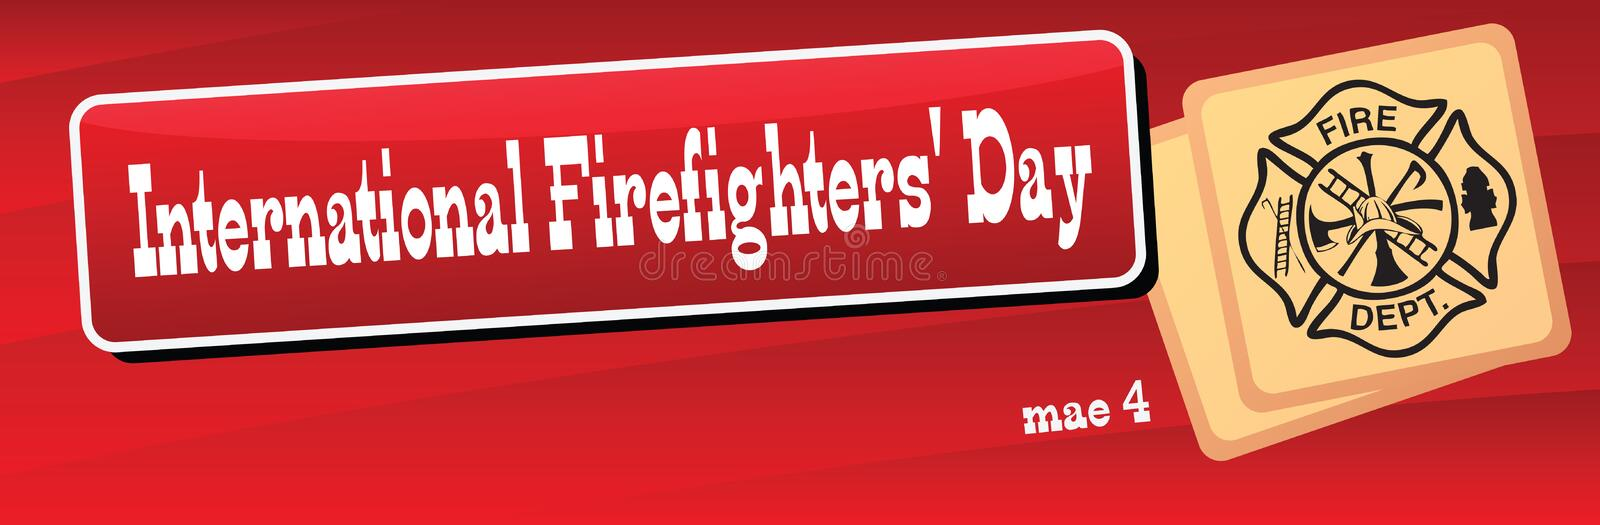 International Firefighters Day. Banner International Firefighters' Day on May 4. Vector illustration royalty free illustration